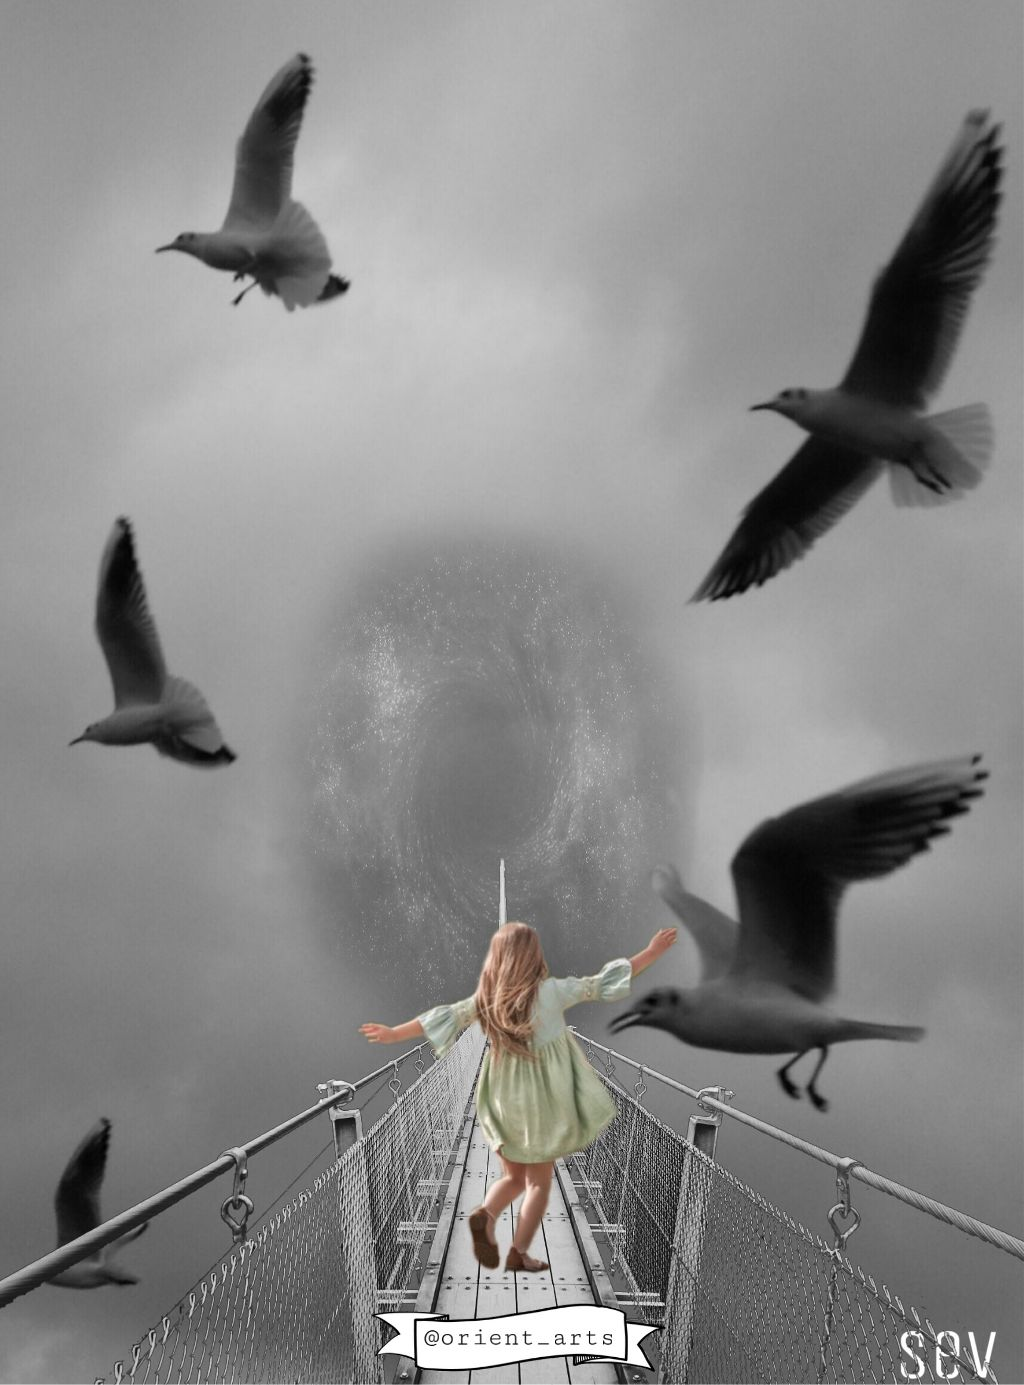 #freetoedit #seagull #hole #girl #bridge #blackandwhite #vipshoutout #imagination #fantasy #picsart @picsart